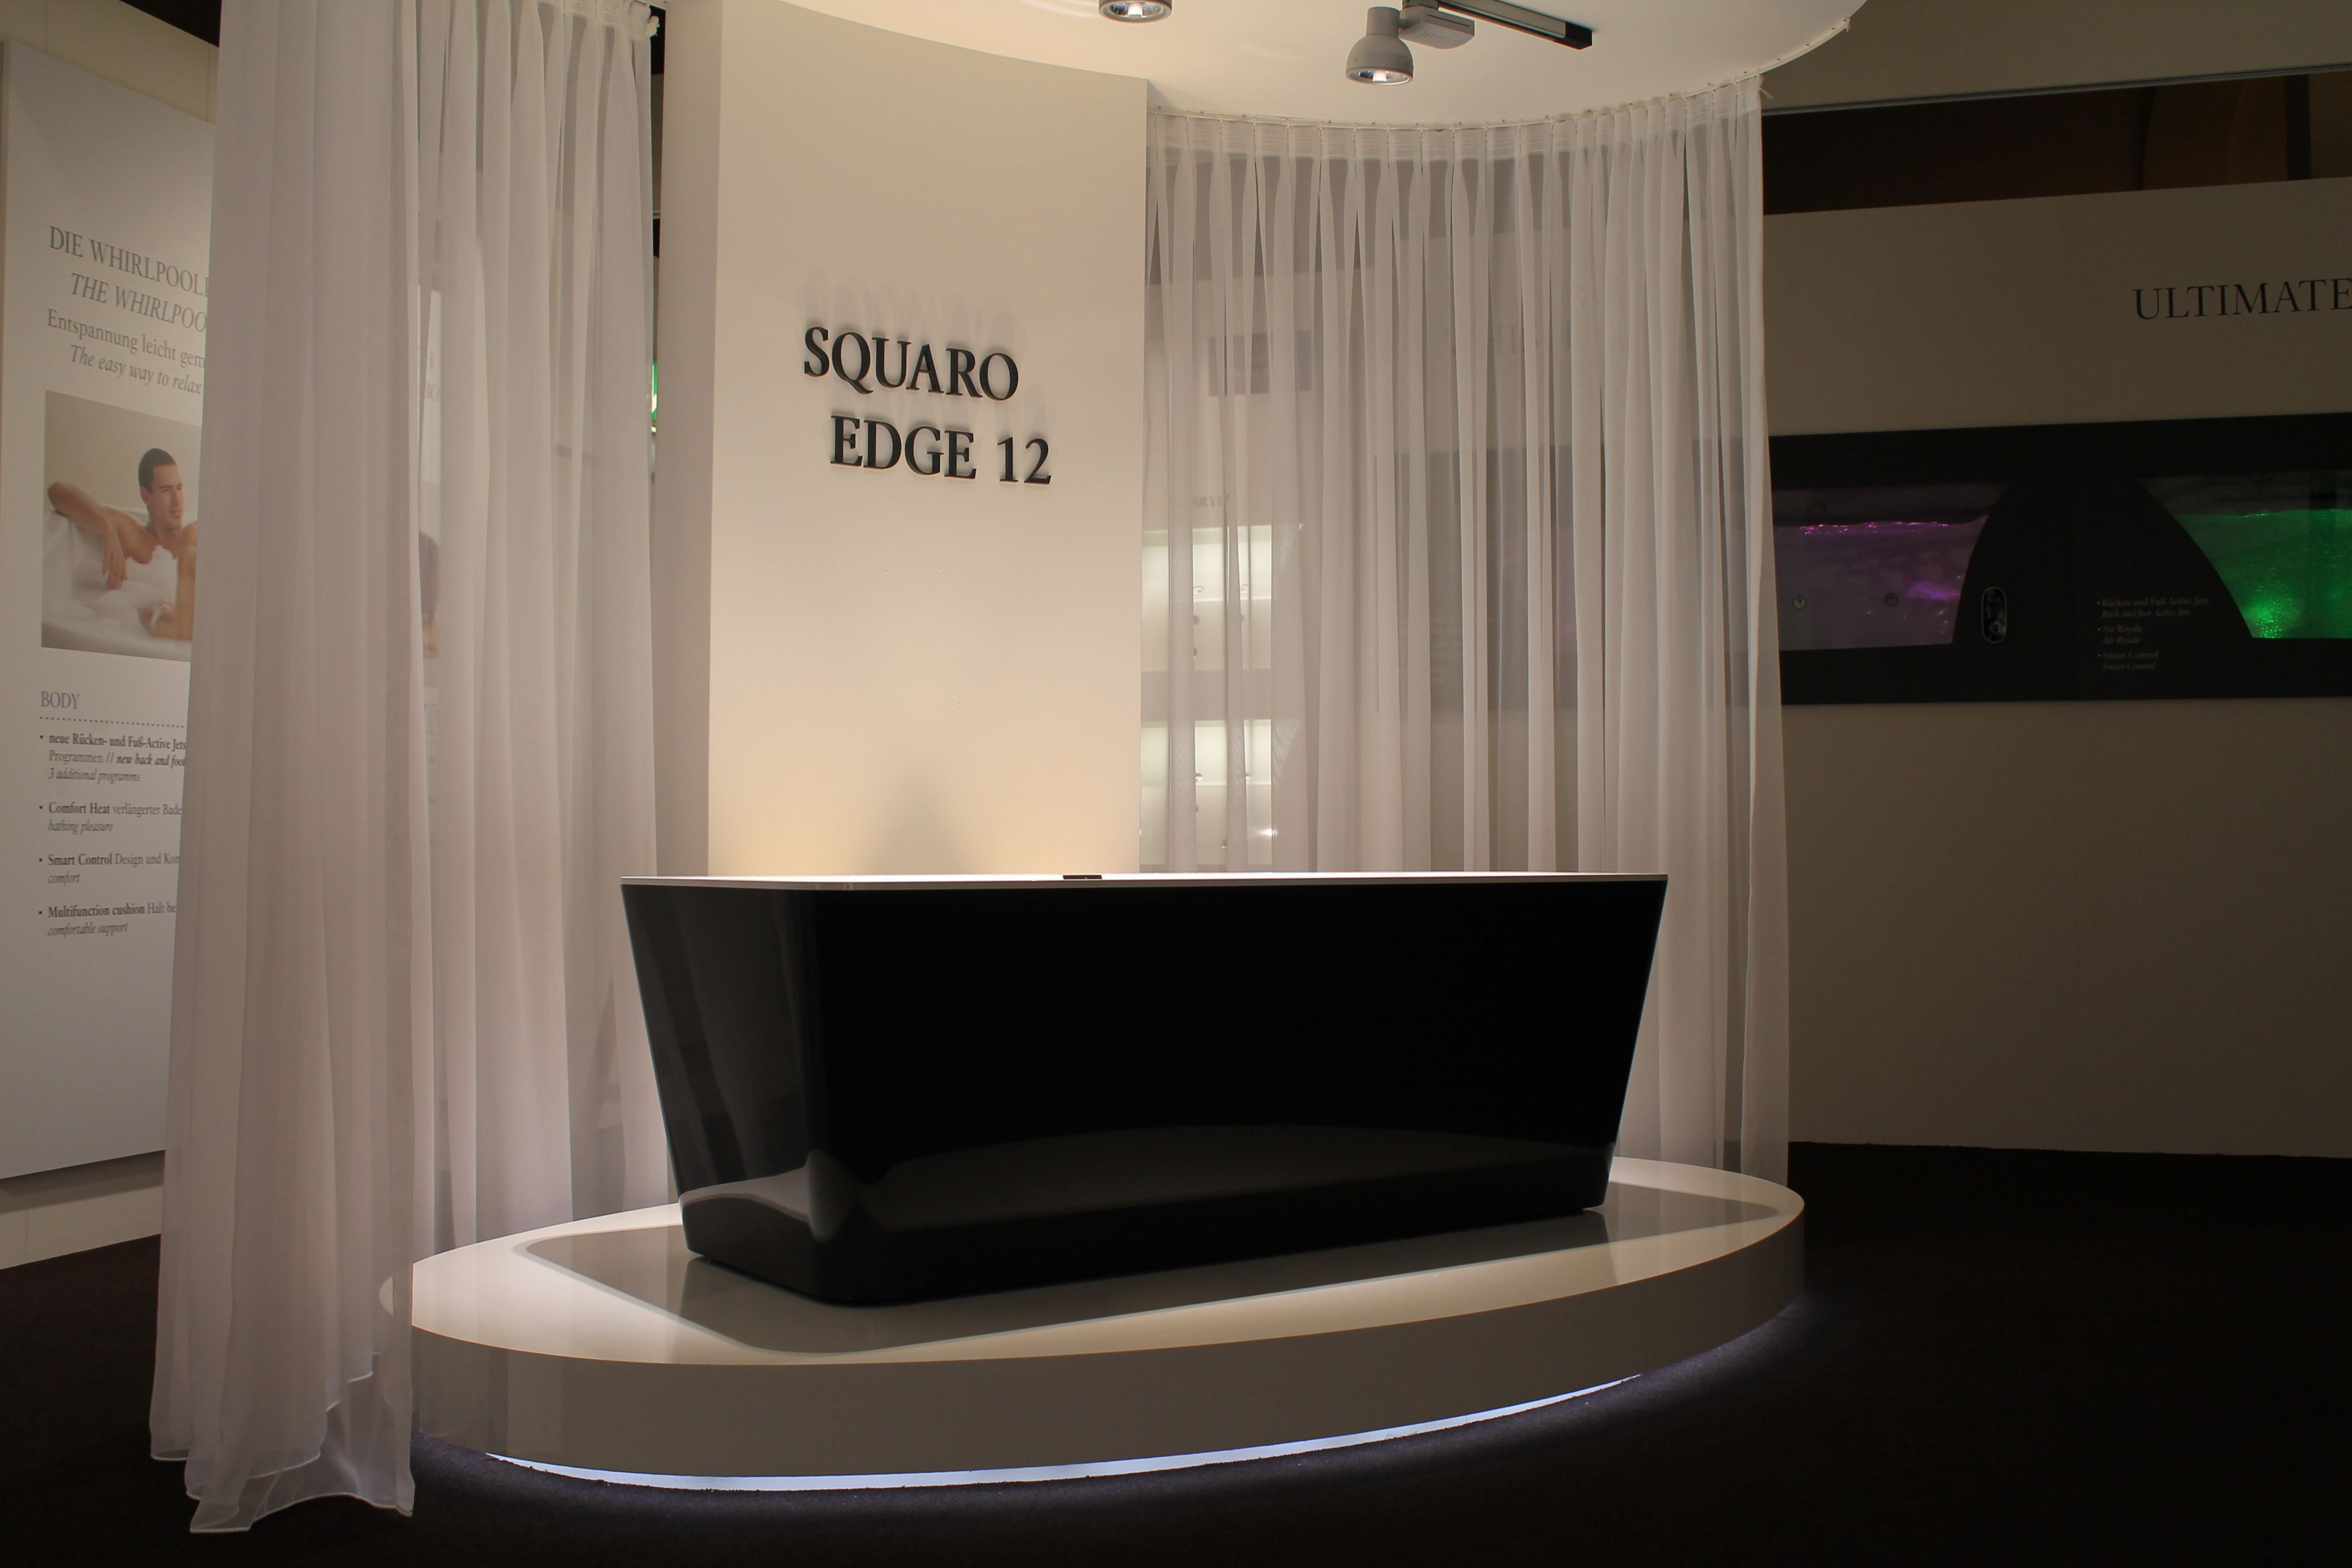 squaro edge 12 bathtub ish 39 13 villeroy boch villeroy boch events pinterest. Black Bedroom Furniture Sets. Home Design Ideas